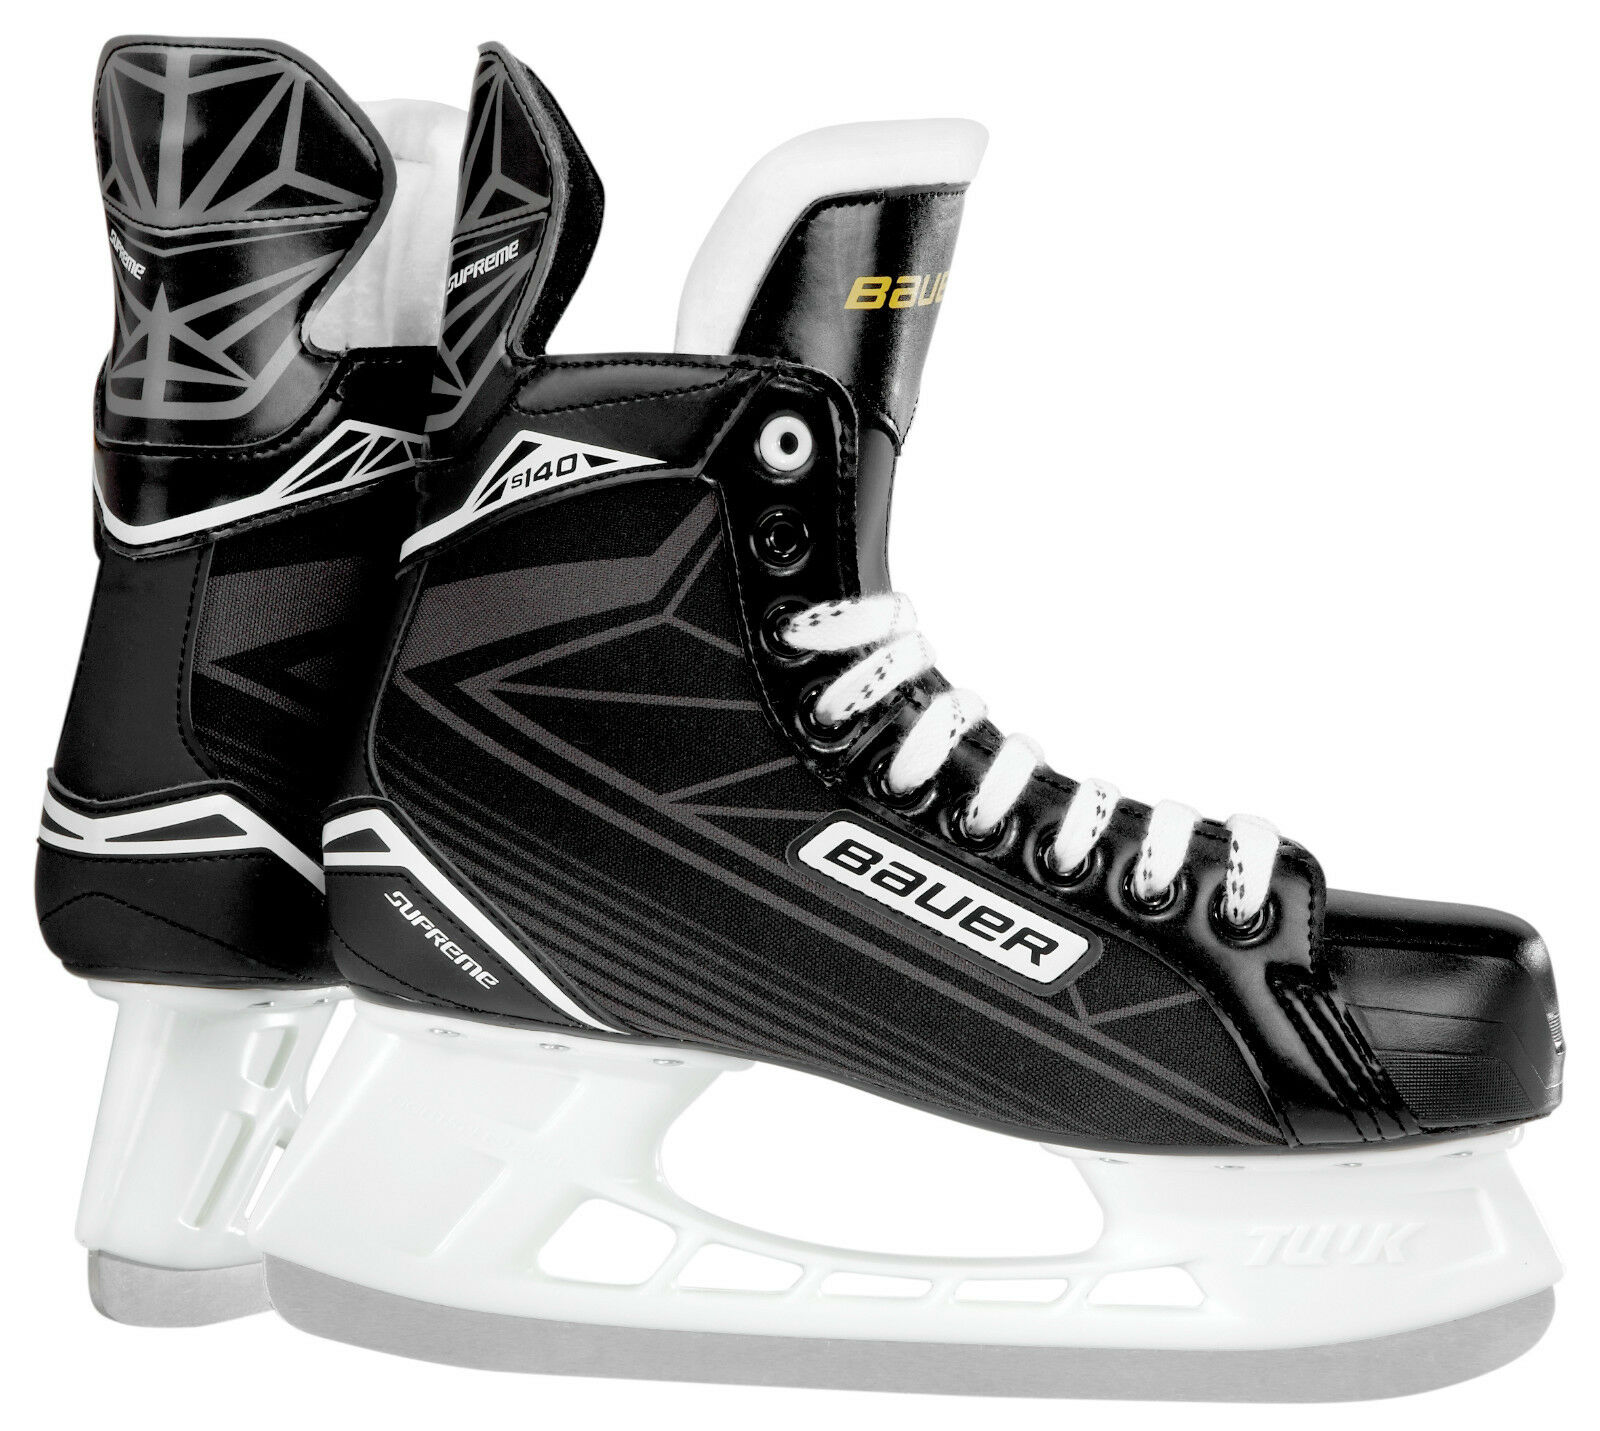 NEW 2016 MODEL OUT NOW! Bauer Supreme S140 Senior/Junior Ice Hockey Skates